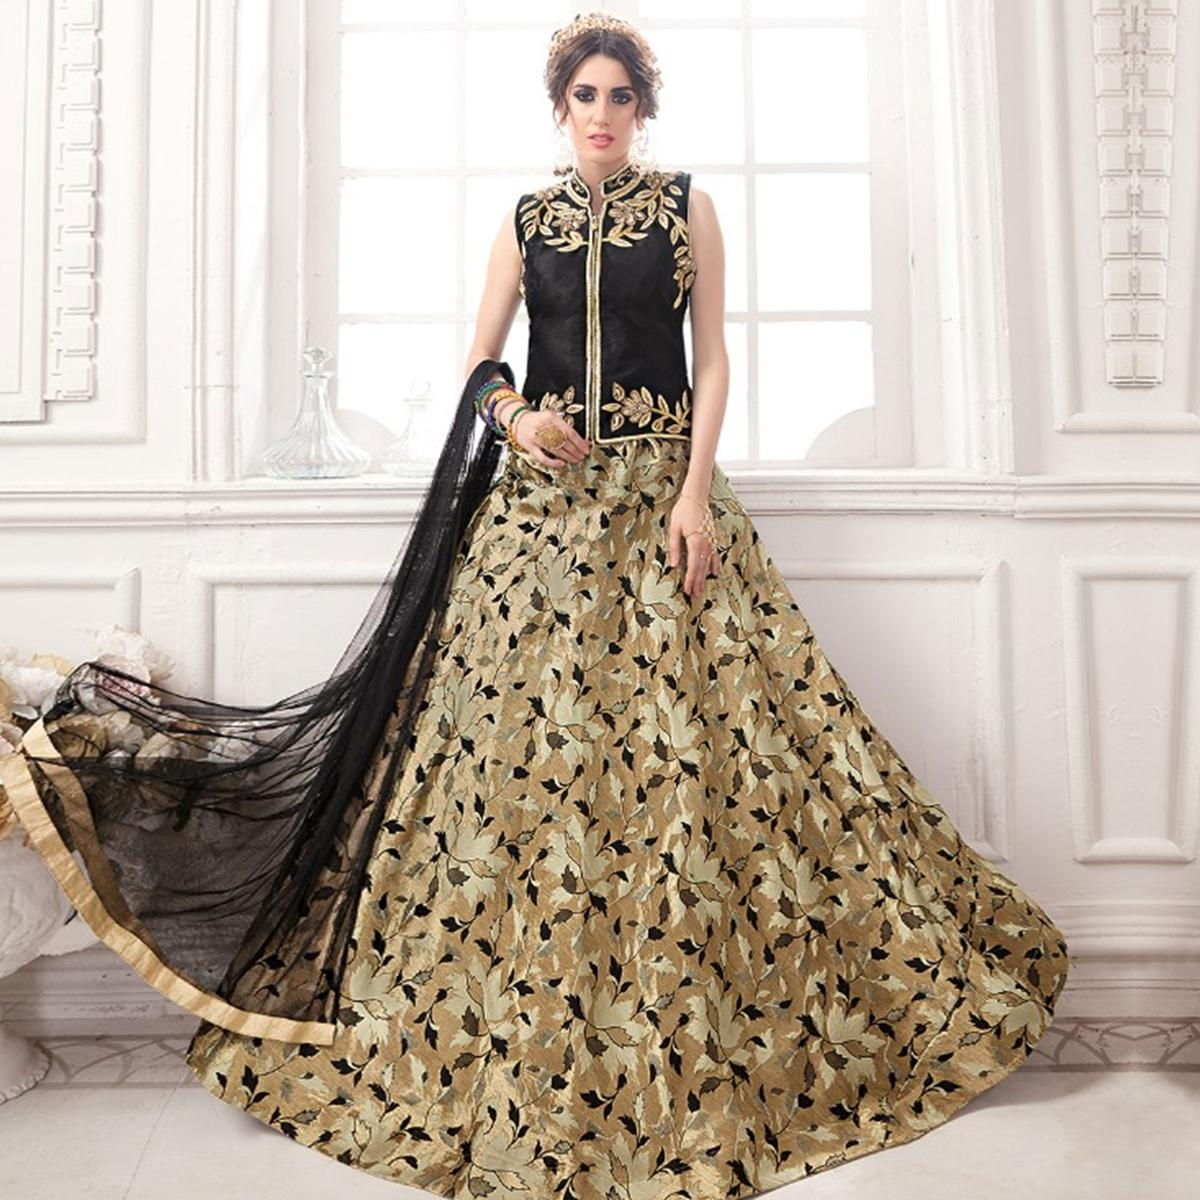 dddd2a5ee9 Buy Flamboyant Black-Chiku Colored Partywear Embroidered Jacquard Silk  Lehenga Choli online India, Best Prices, Reviews - Peachmode